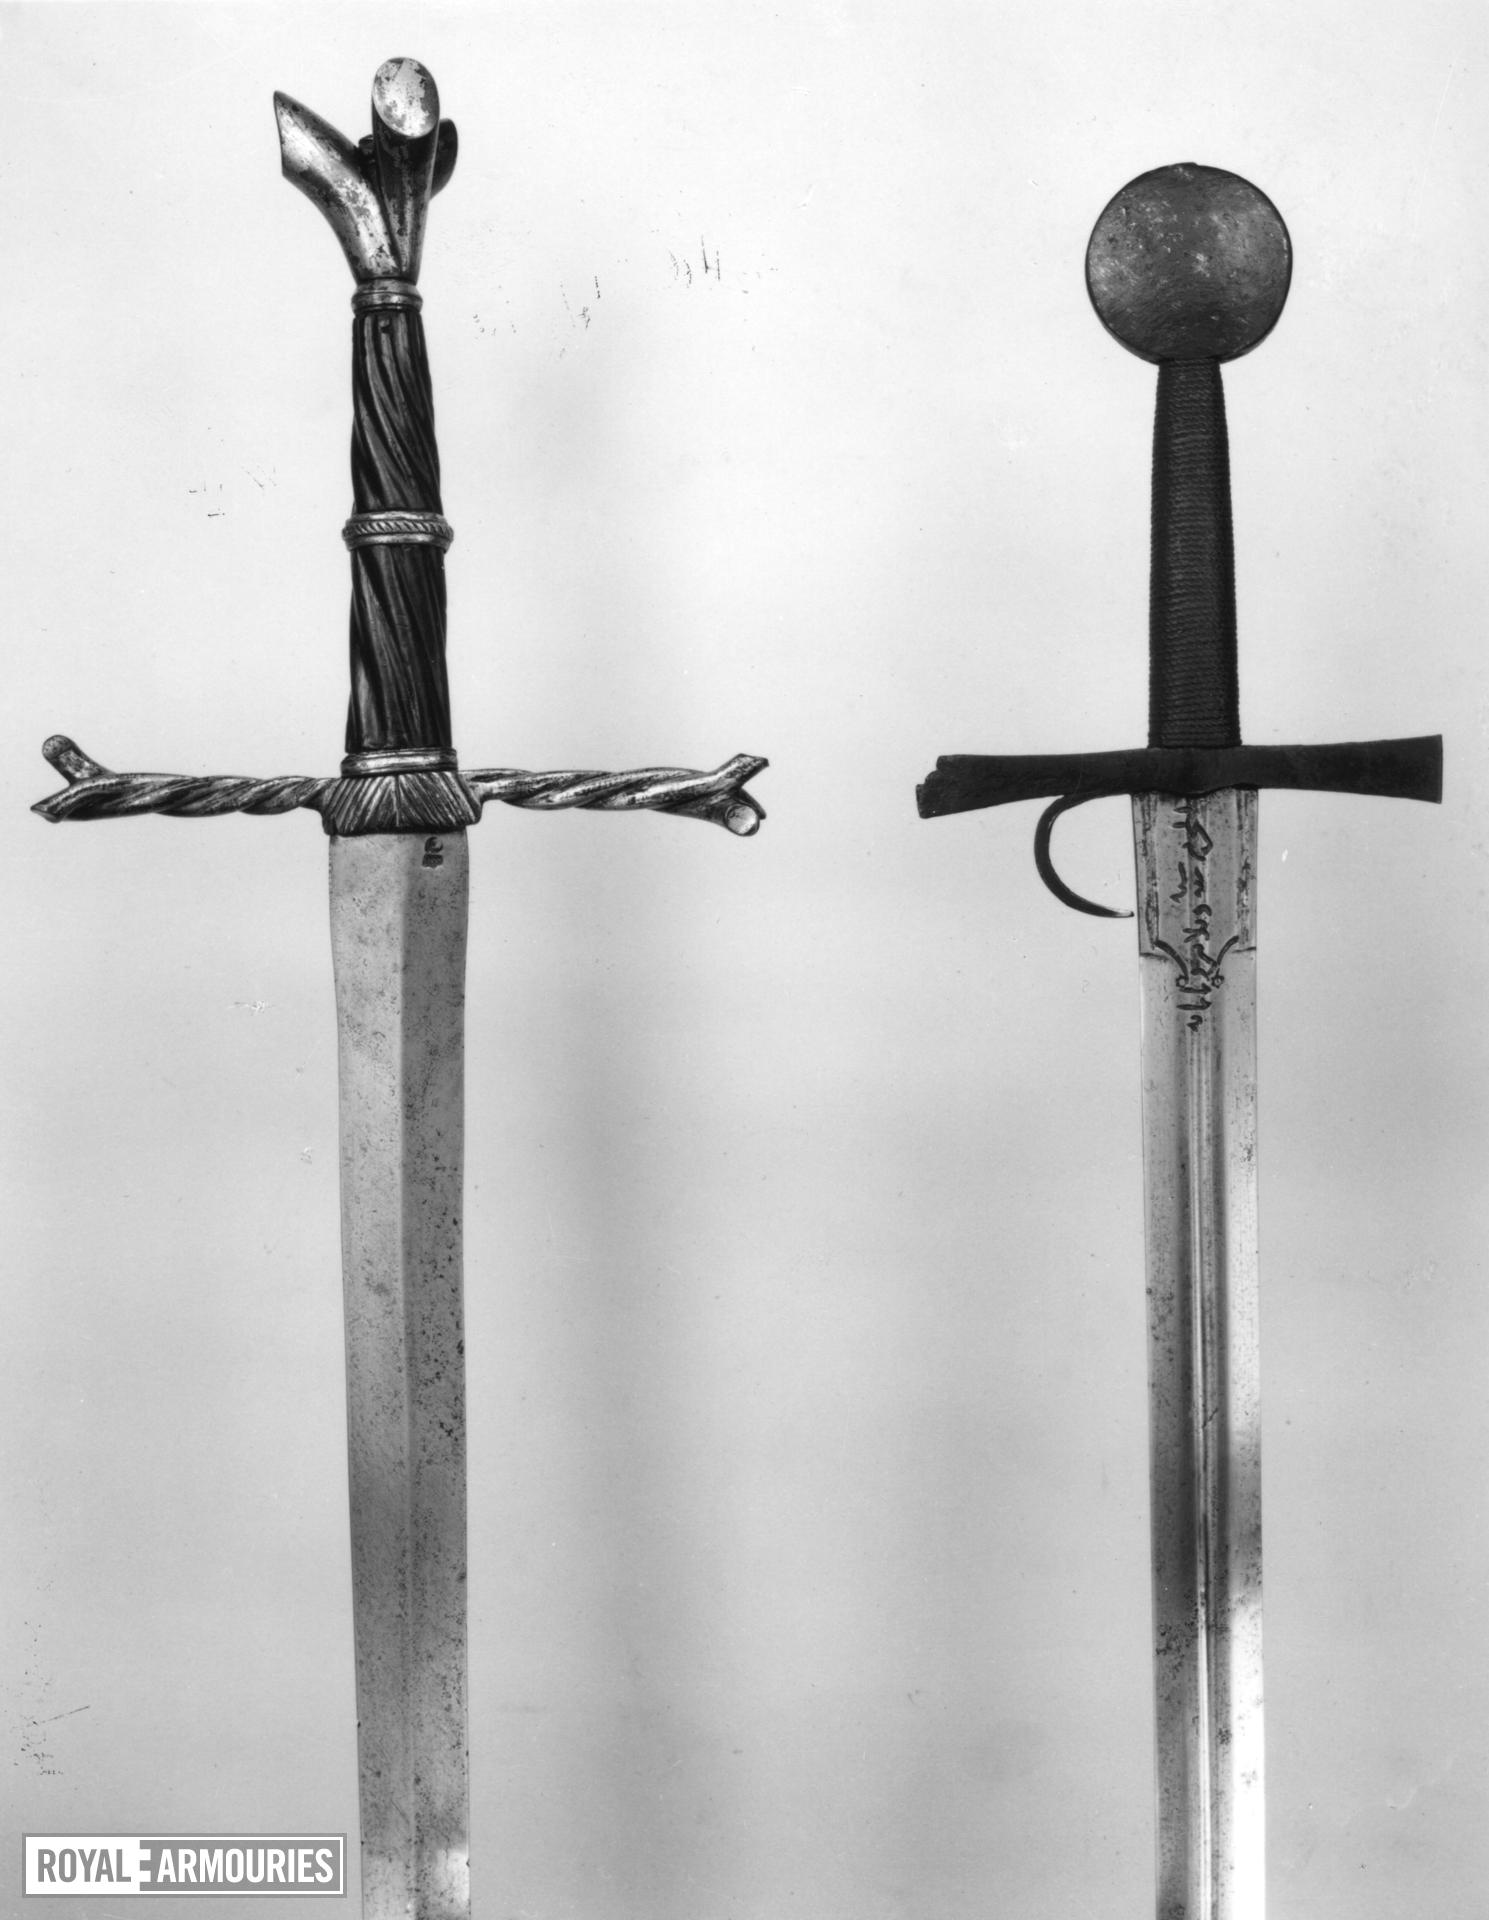 Sword - Writhen Hilted Sword Sword of Oakeshott type XVIIIa (1981); type XVIII or XVIIIa (1991)